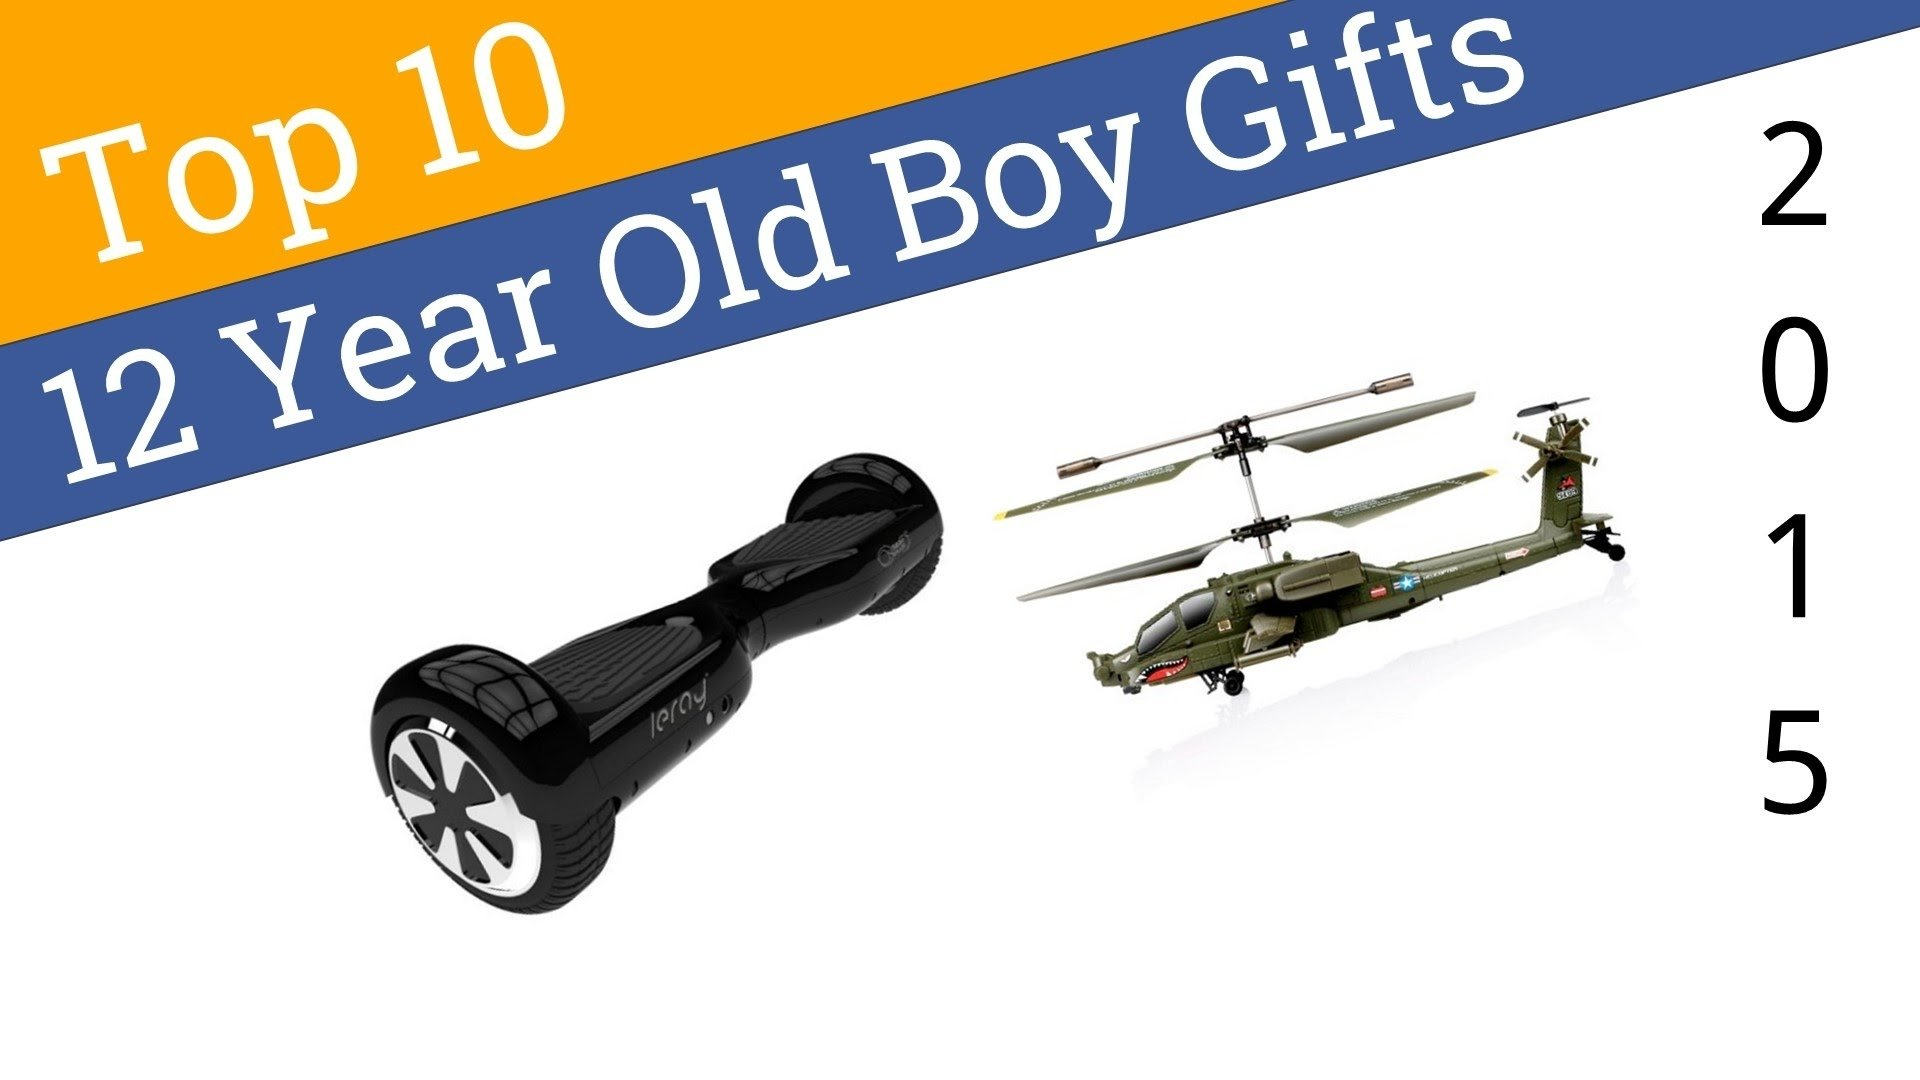 10 Ideal Christmas Gift Ideas For 12 Year Old Boy 10 best 12 year old boy gifts 2015 youtube 7 2020